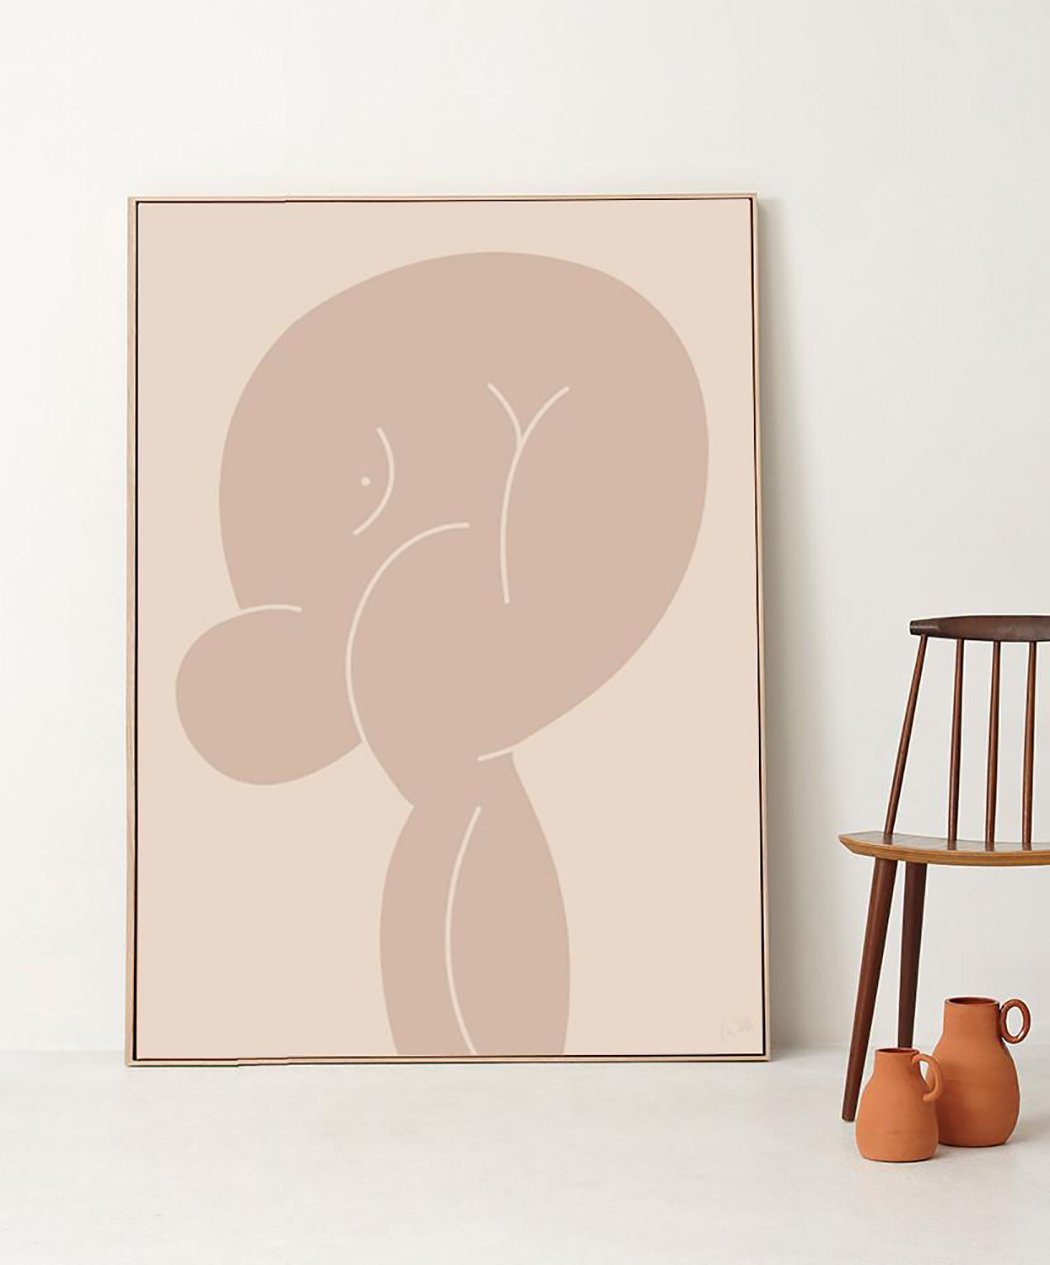 iGNANT-Art-Caroline-Walls-She-Her-Women-Intimacy-Abstract-Nudes-5